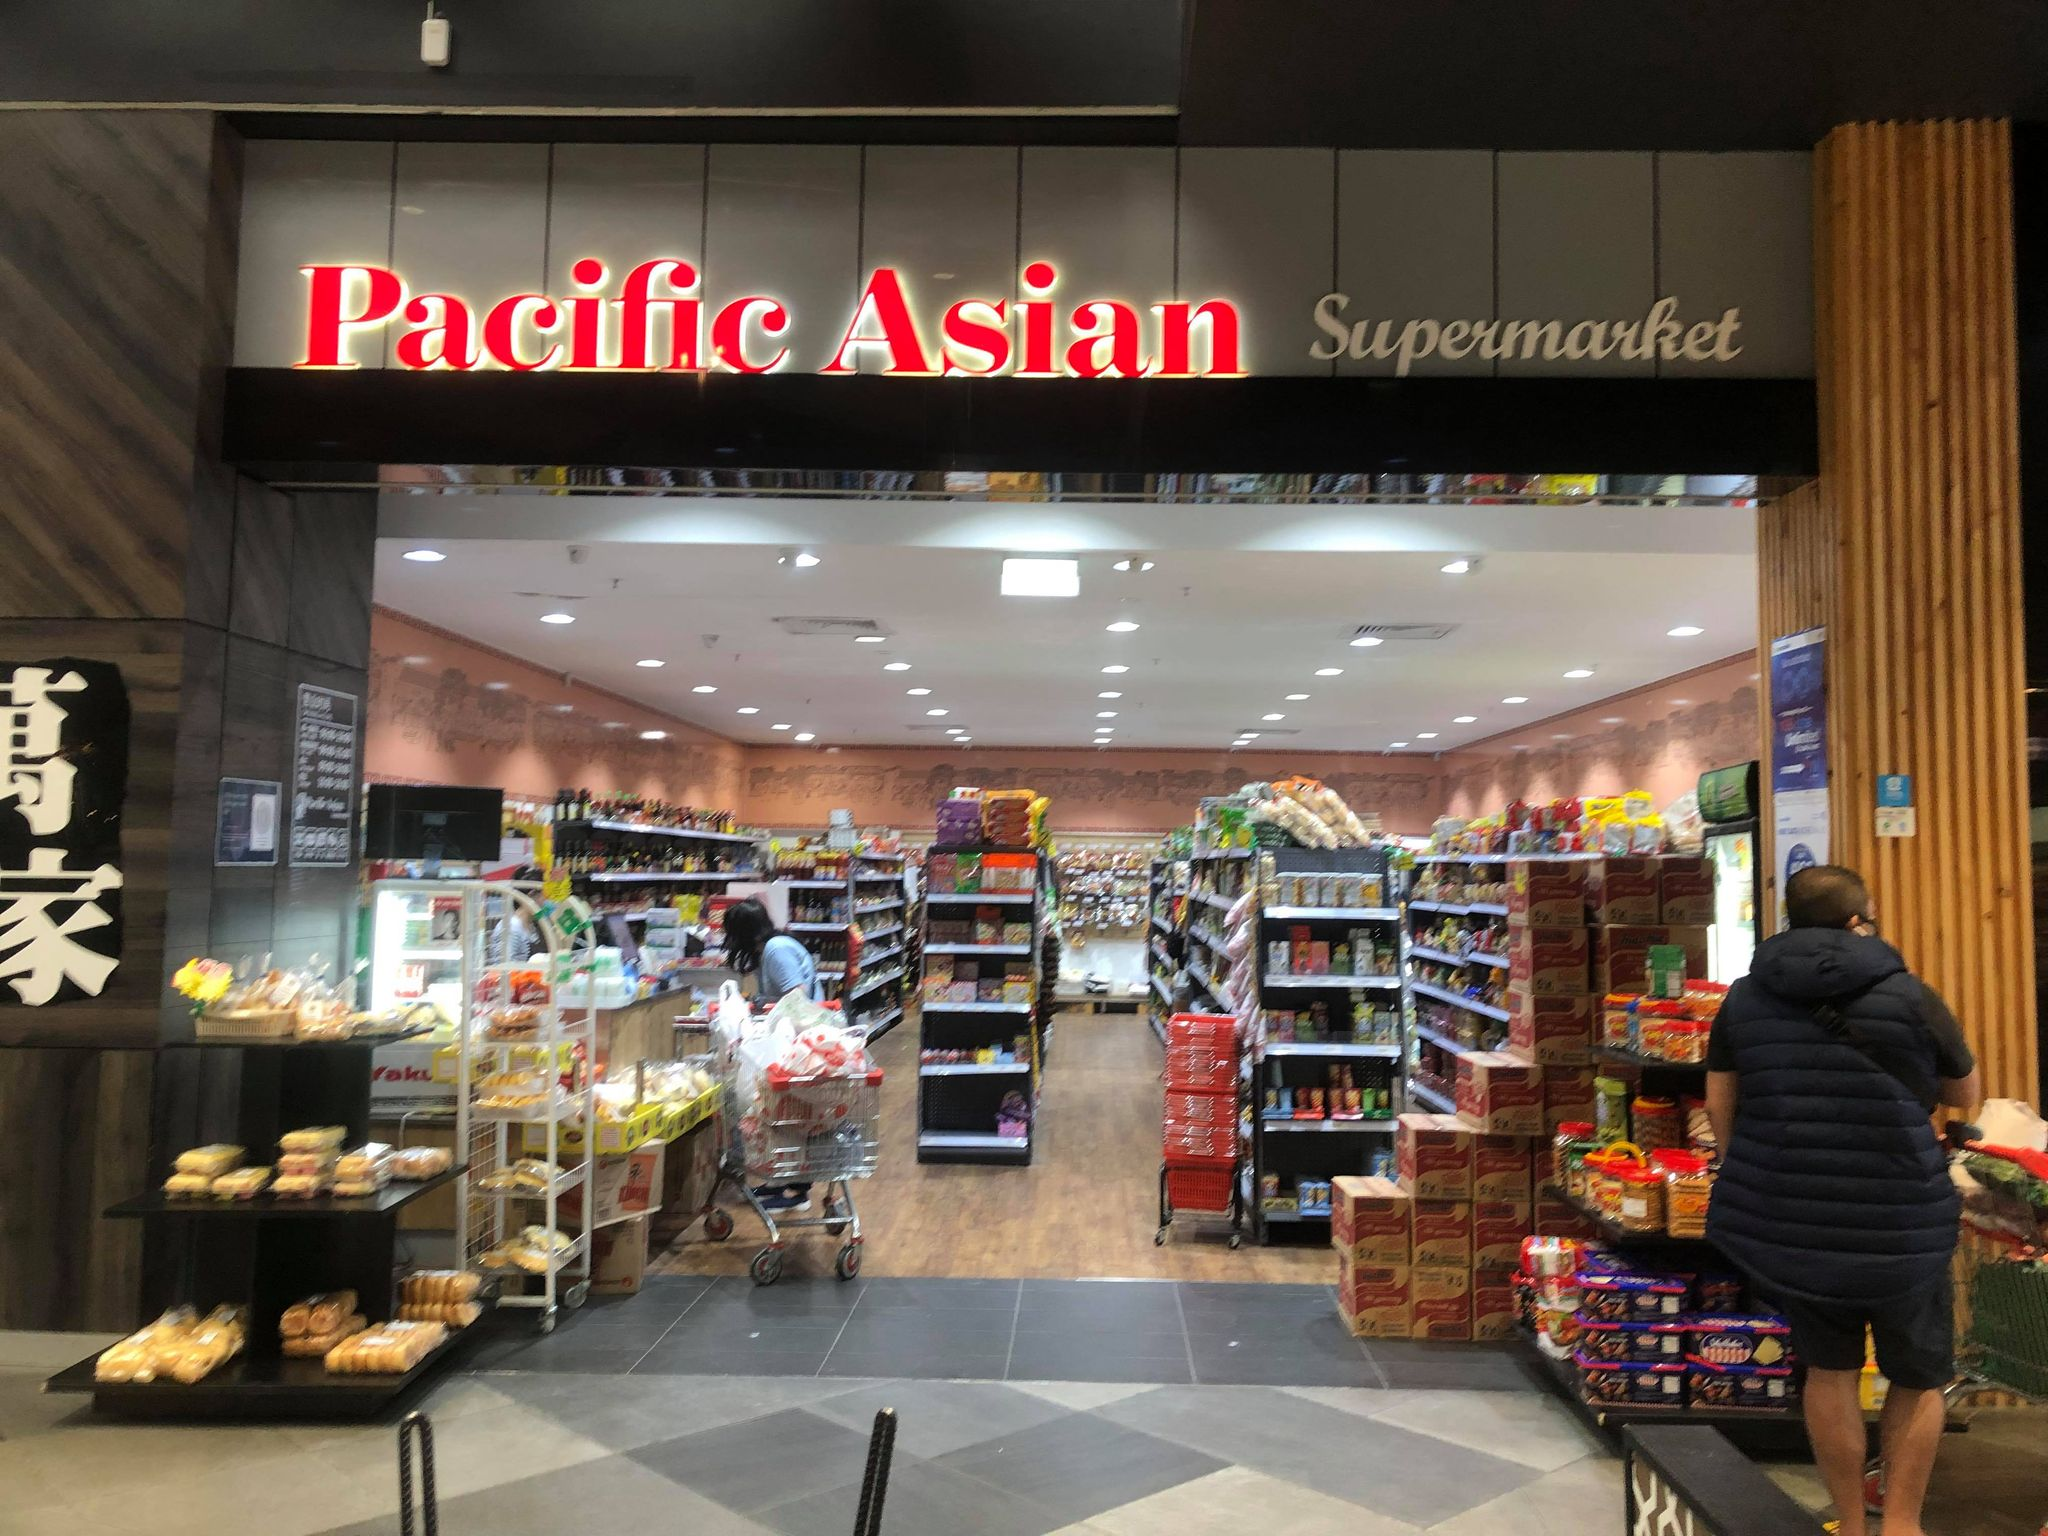 pacific werribee december 2020 pacific asian supermarket